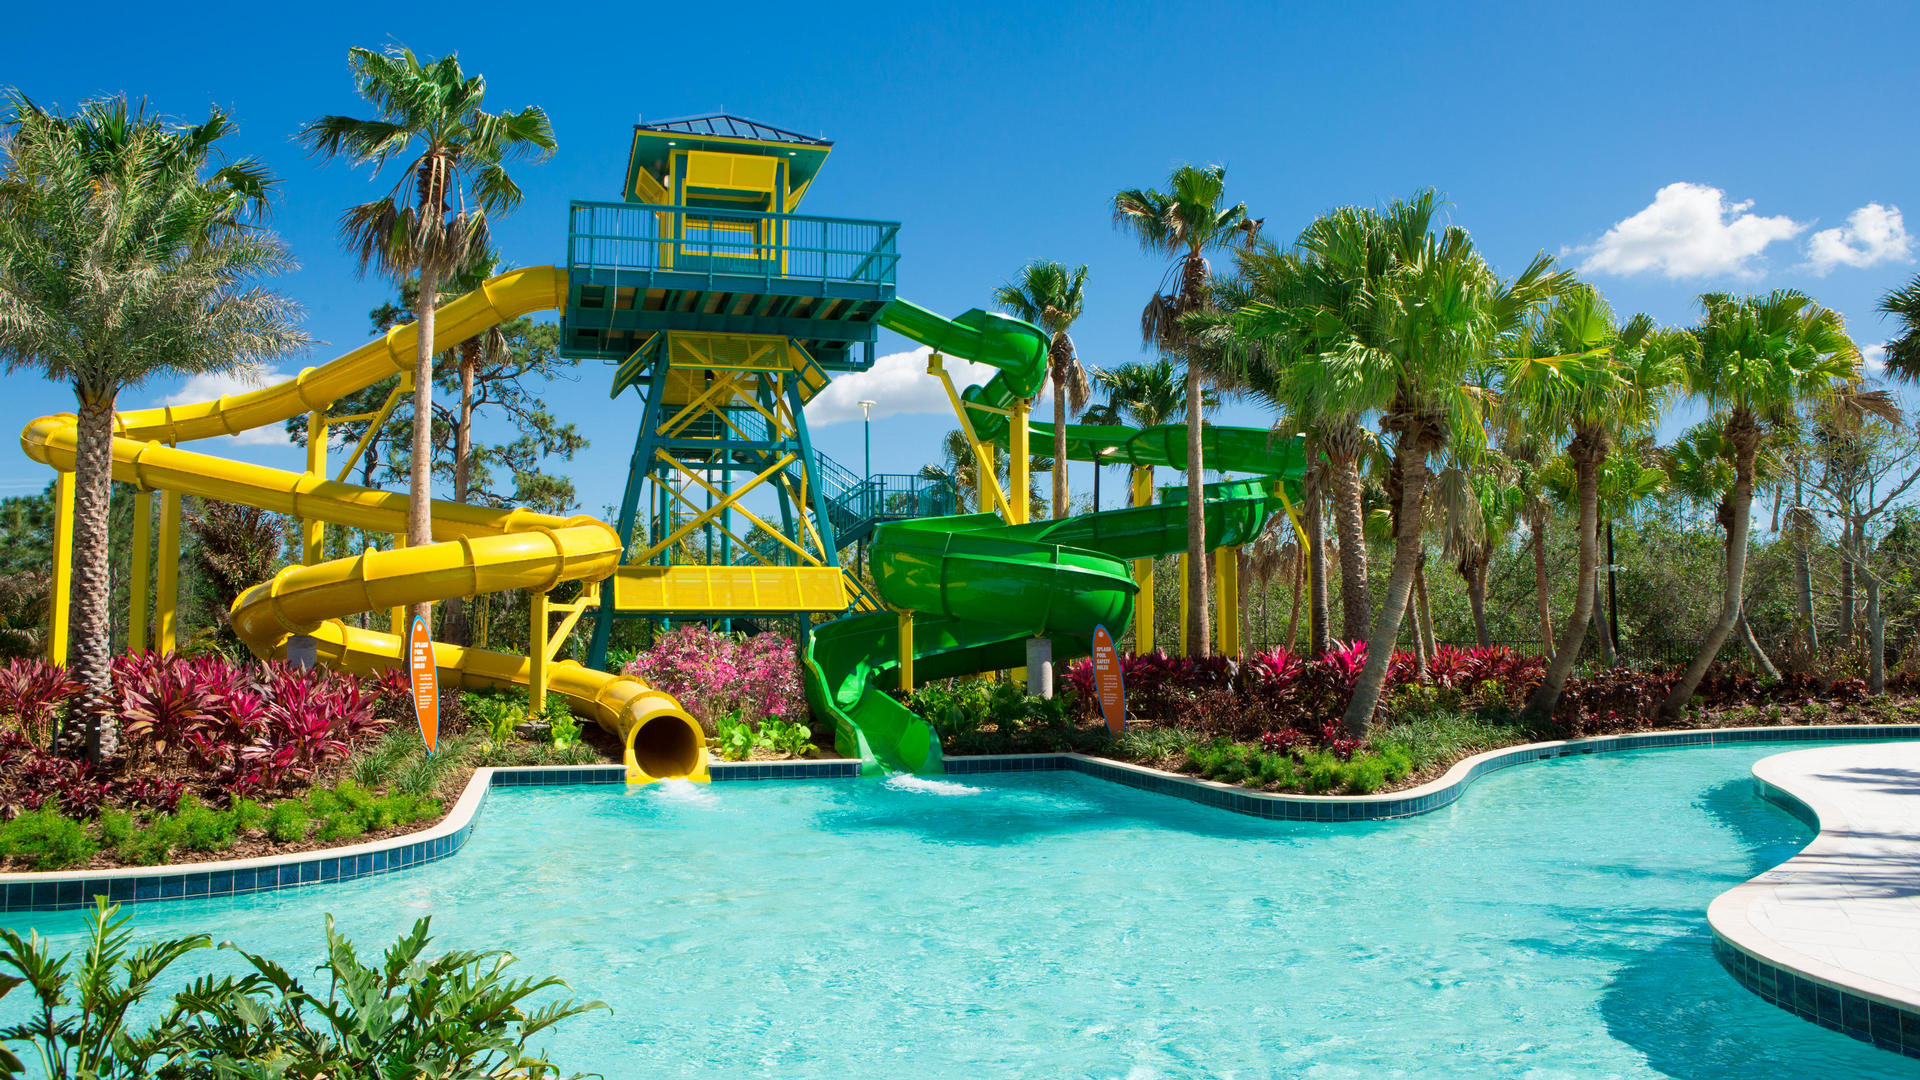 Surfari waterslides